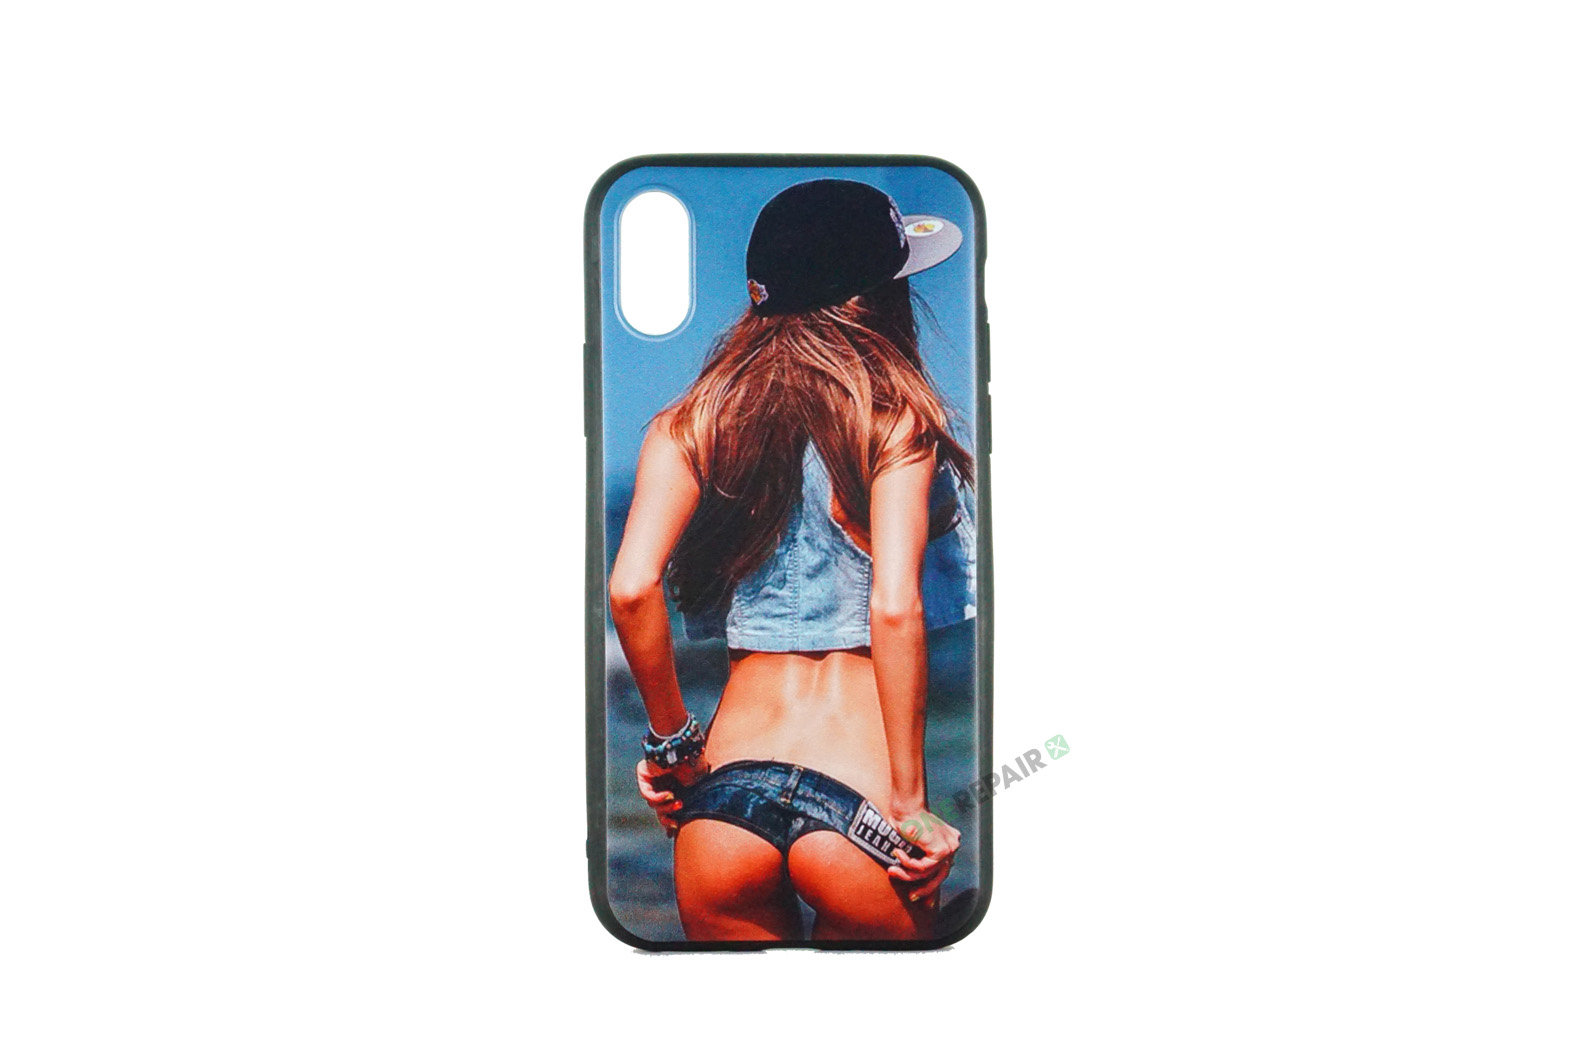 iPhone X Cover, iPhone XS Cover, Model,